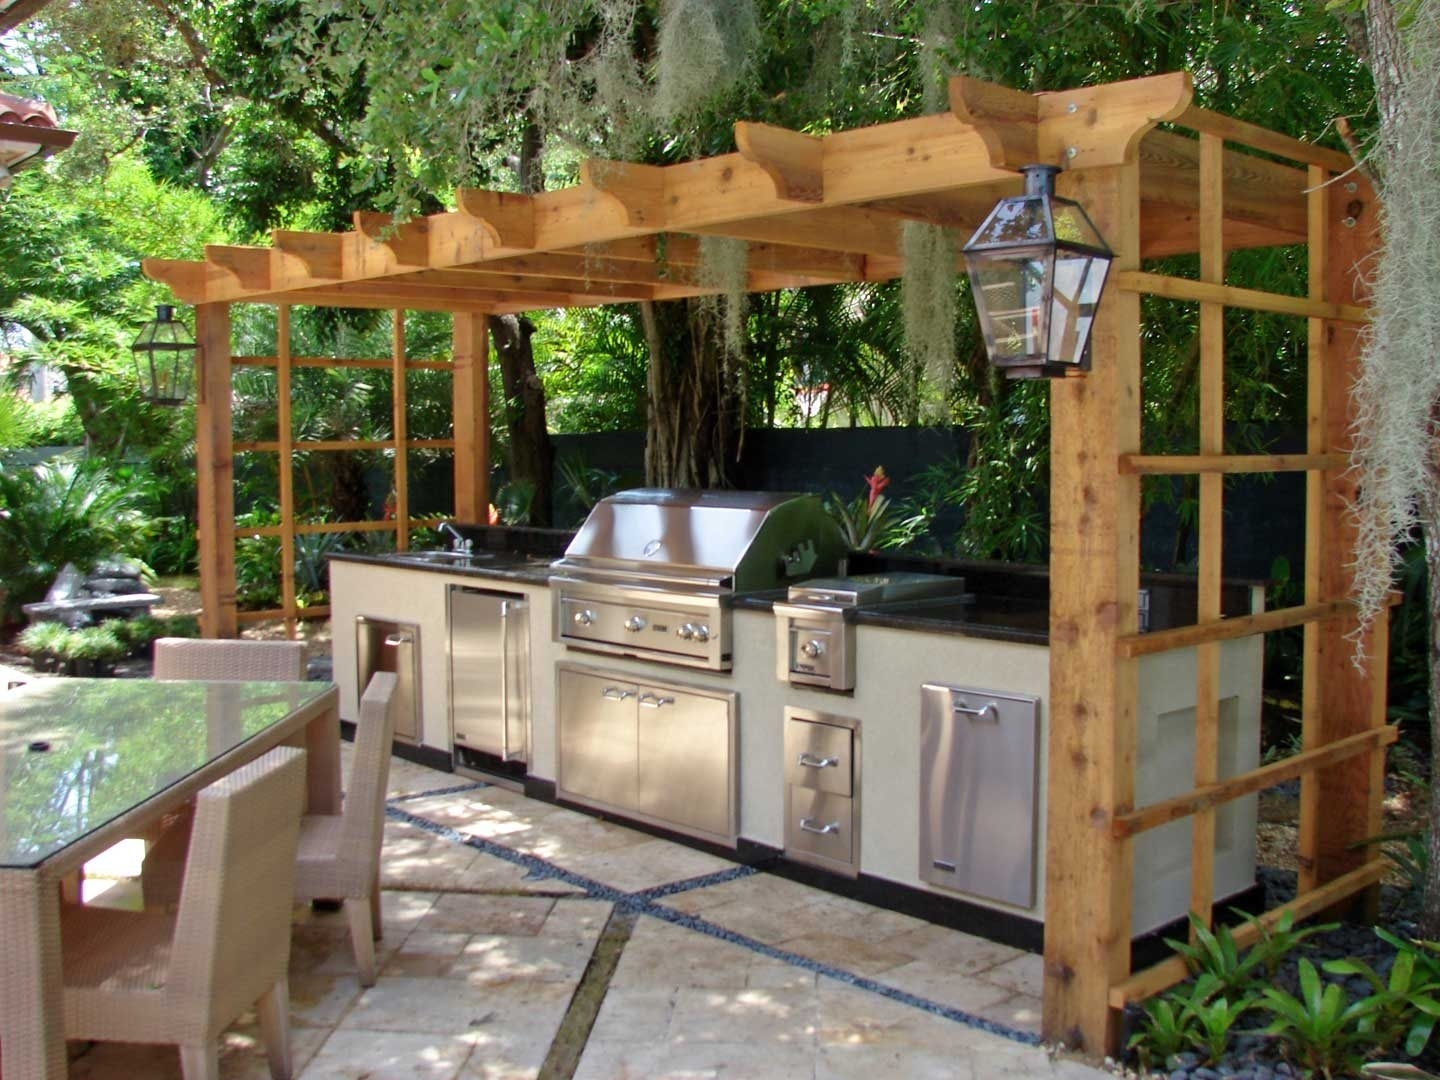 Image of: Outdoor Kitchen Ideas For Small Spaces Rustic Cabinets Rustic Wood In Outdoor Kitchen Wood Countertops Nice Outdoor Kitchen Wood Countertops Inspiration